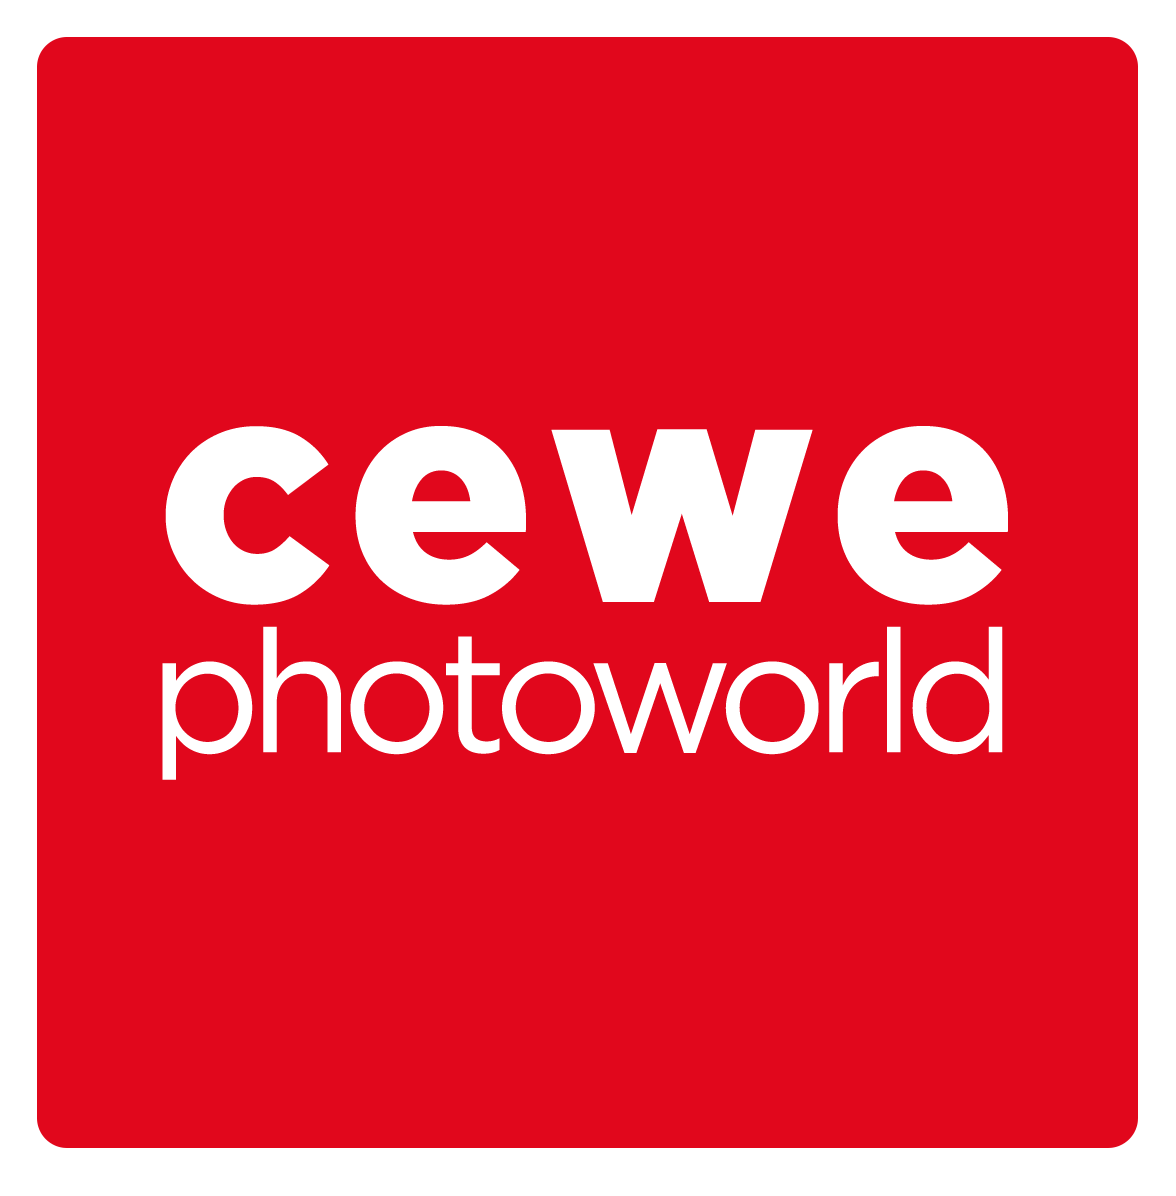 CEWE Photoworld logo